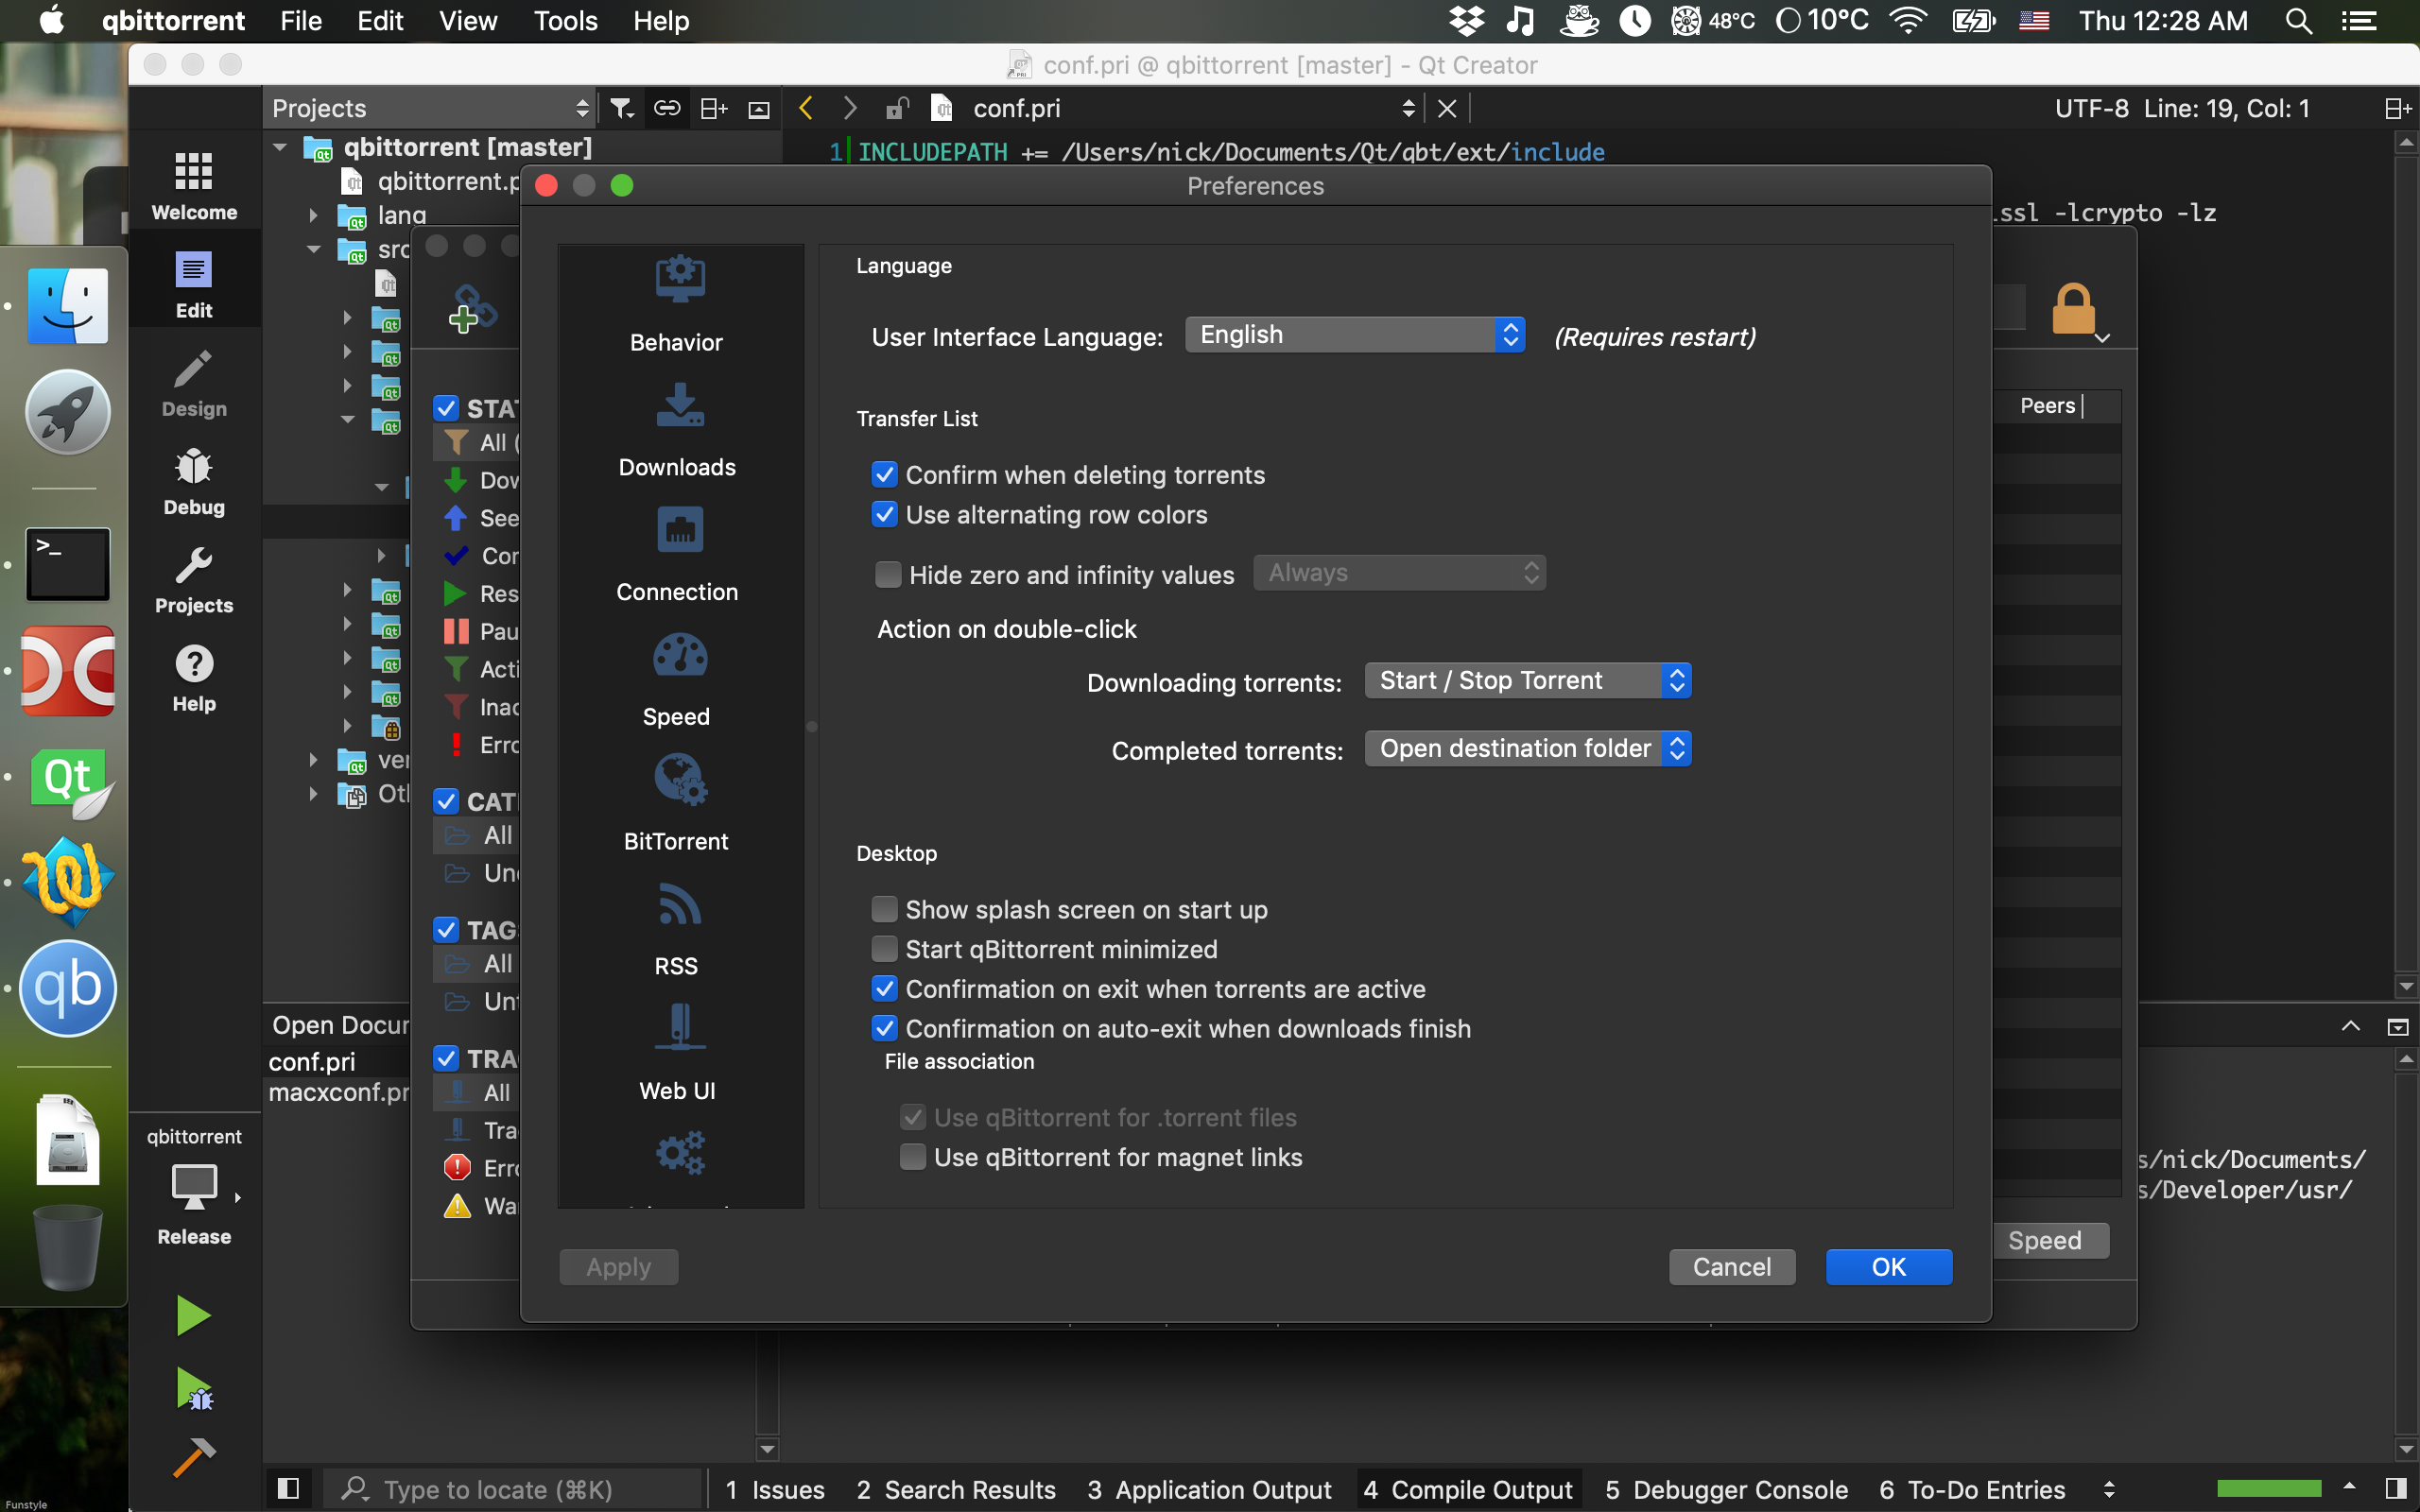 Dreadful look on macOS Mojave with dark theme · Issue #9096